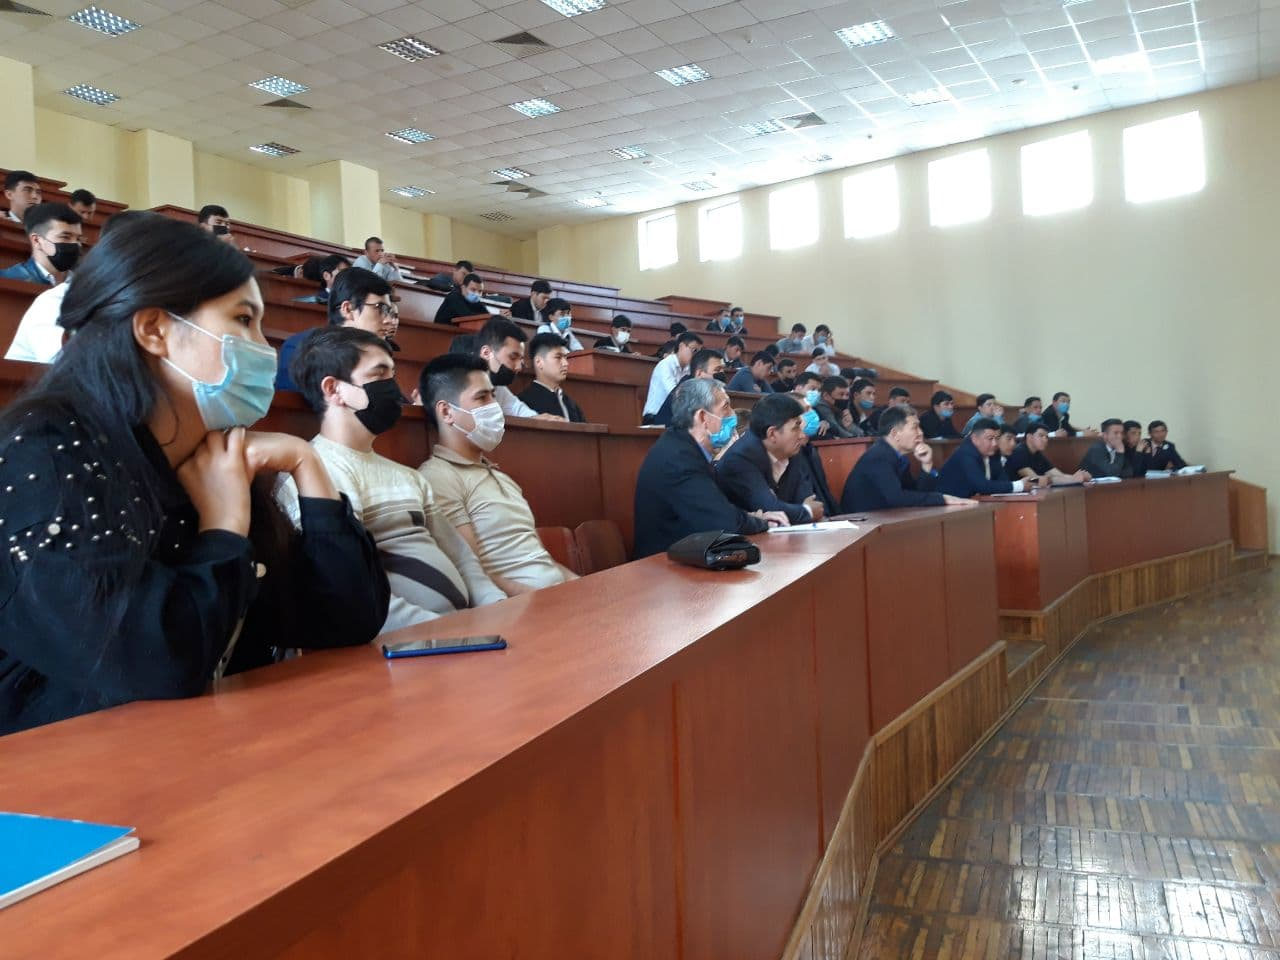 Meetings were held with the participation of students